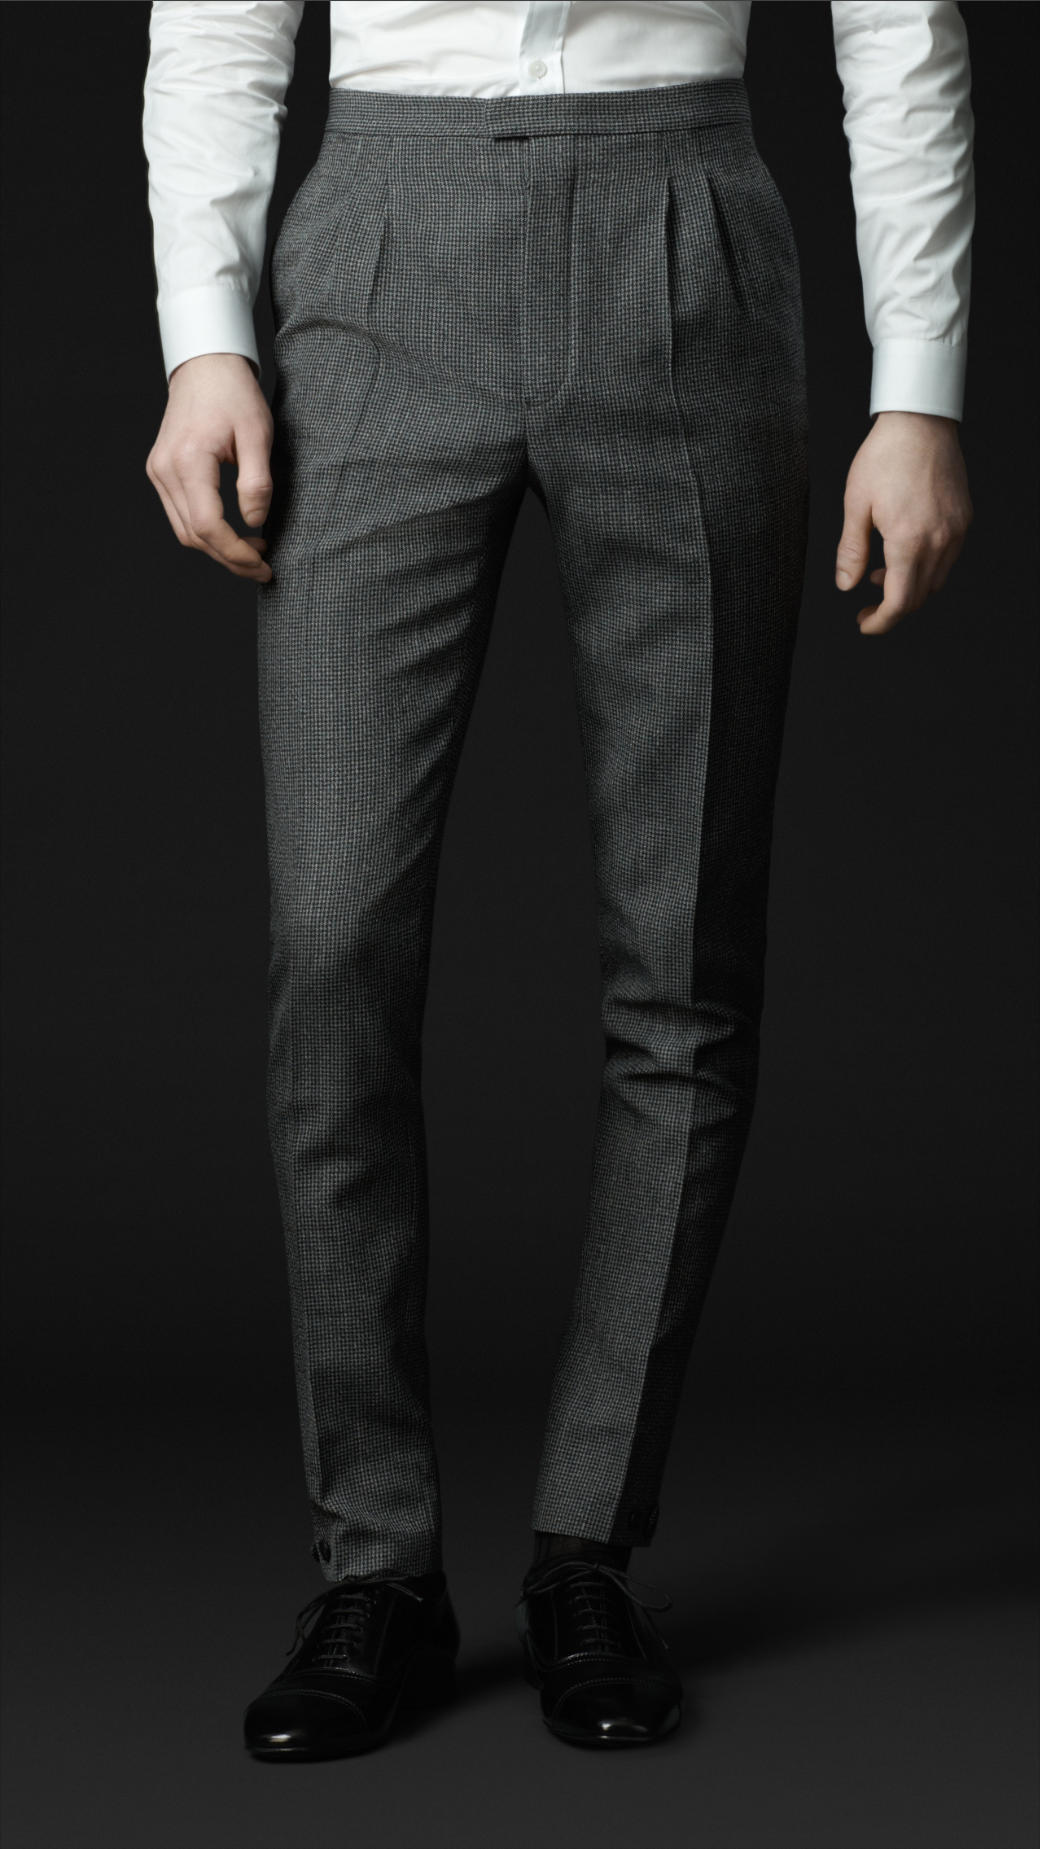 Burberry Prorsum Skinny Fit Houndstooth Trousers in Pewter Grey (Metallic) for Men